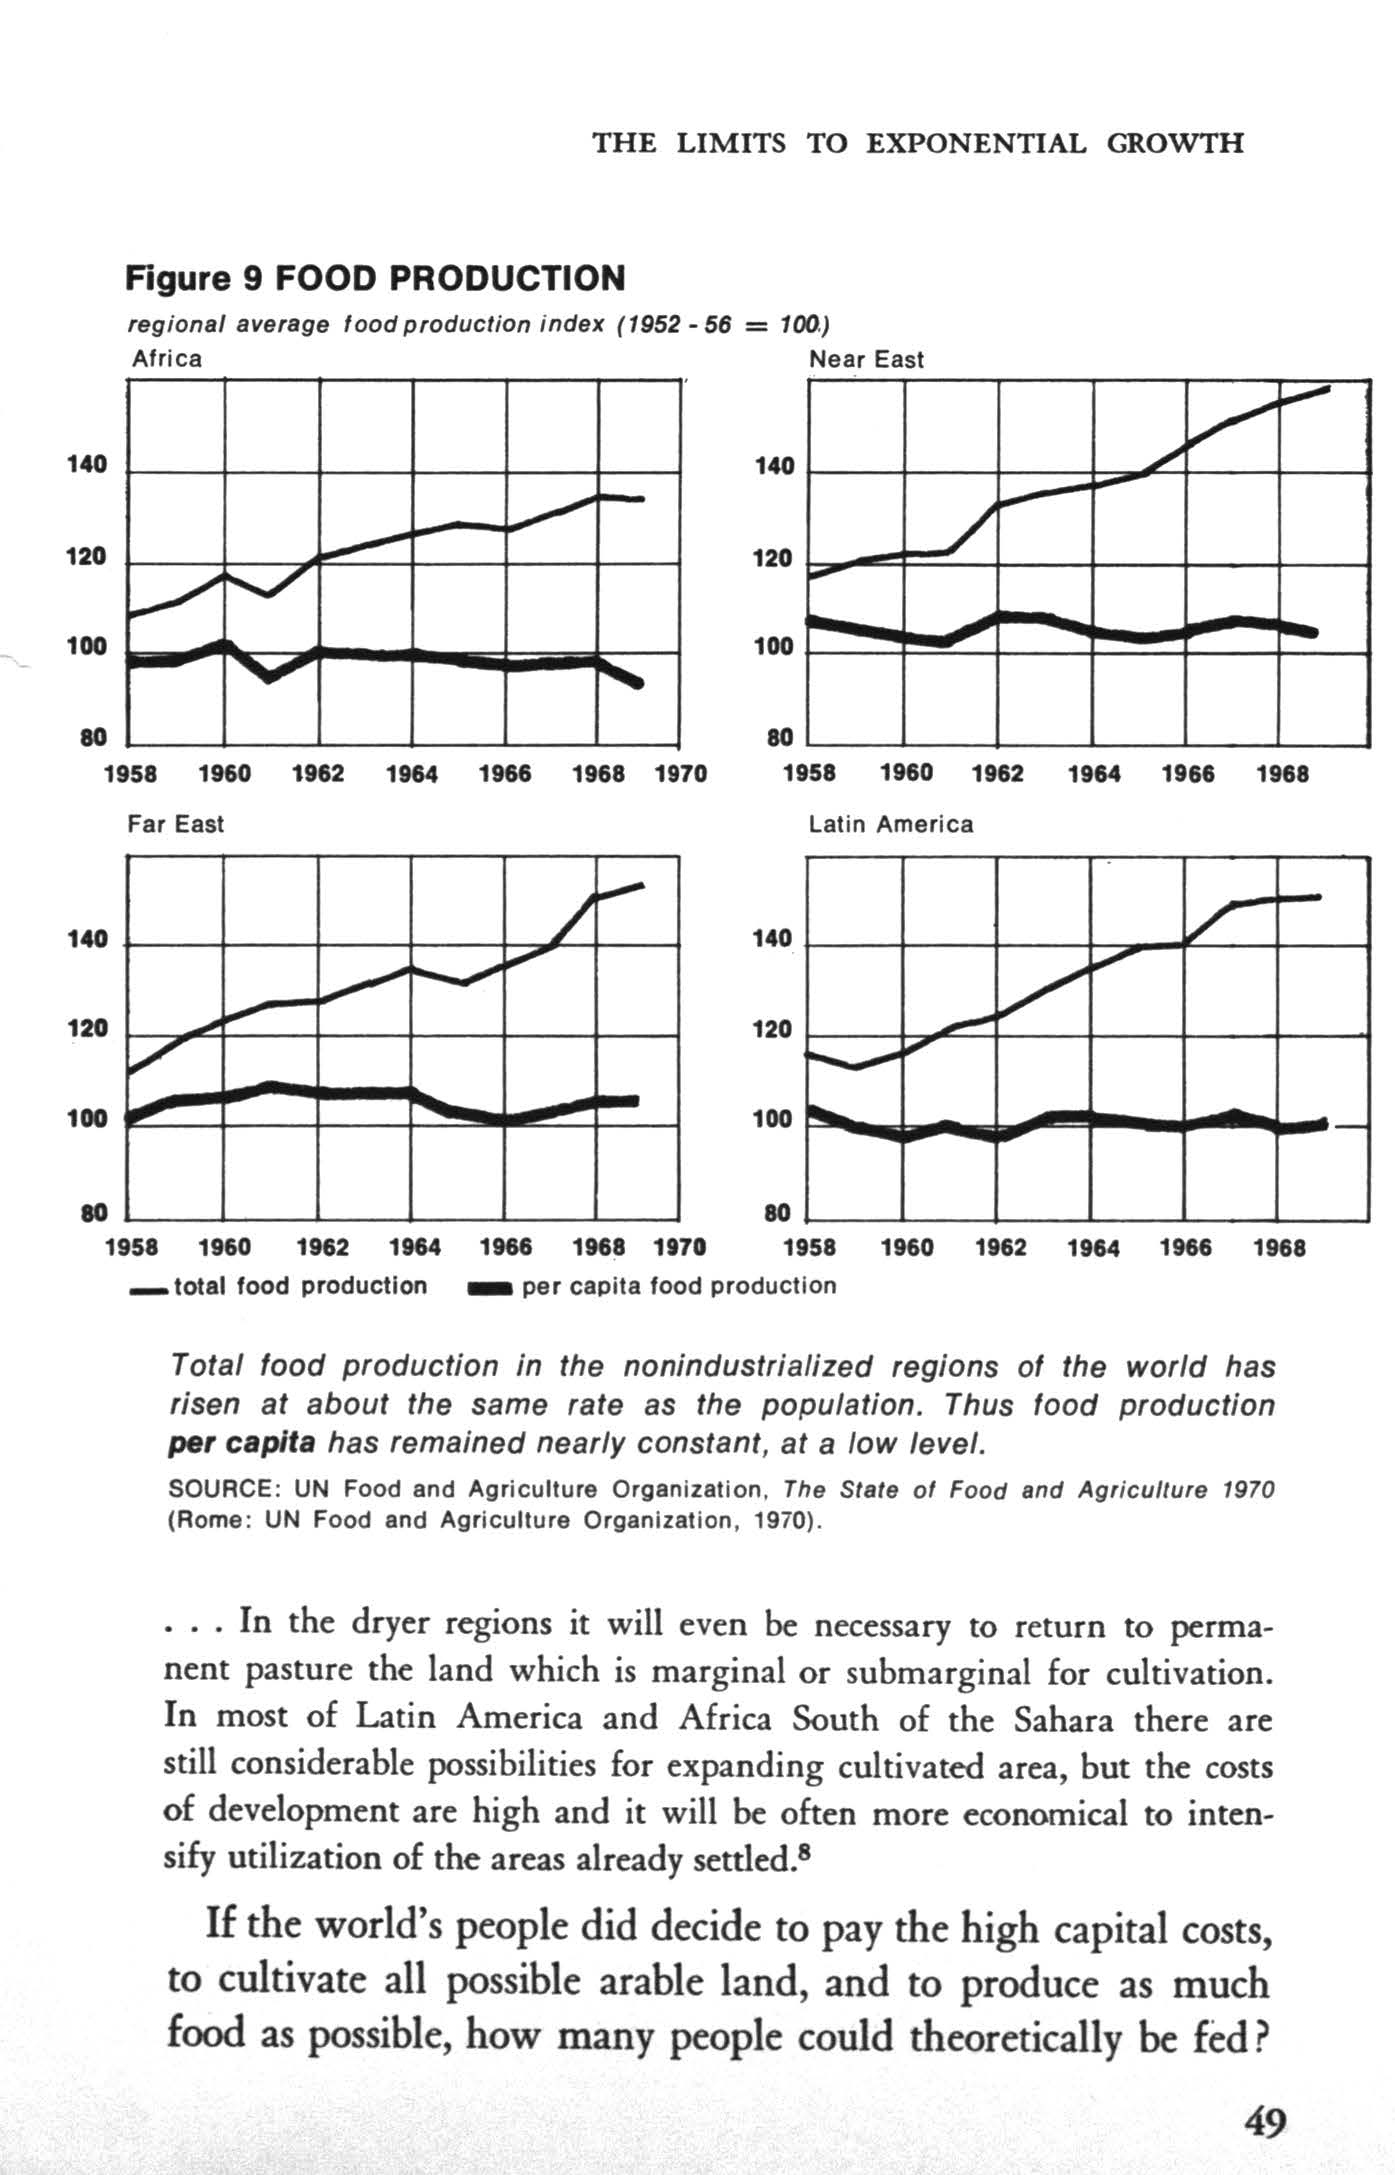 THE LMTS TO EXPONENTAL GROWTH Figure 9 FOOD PRODUCTON regional average food production index (1952-56 = 100.) Africa Near East...,..,. 1--,...,... v 140 140 / 120 L/ - 120 v.